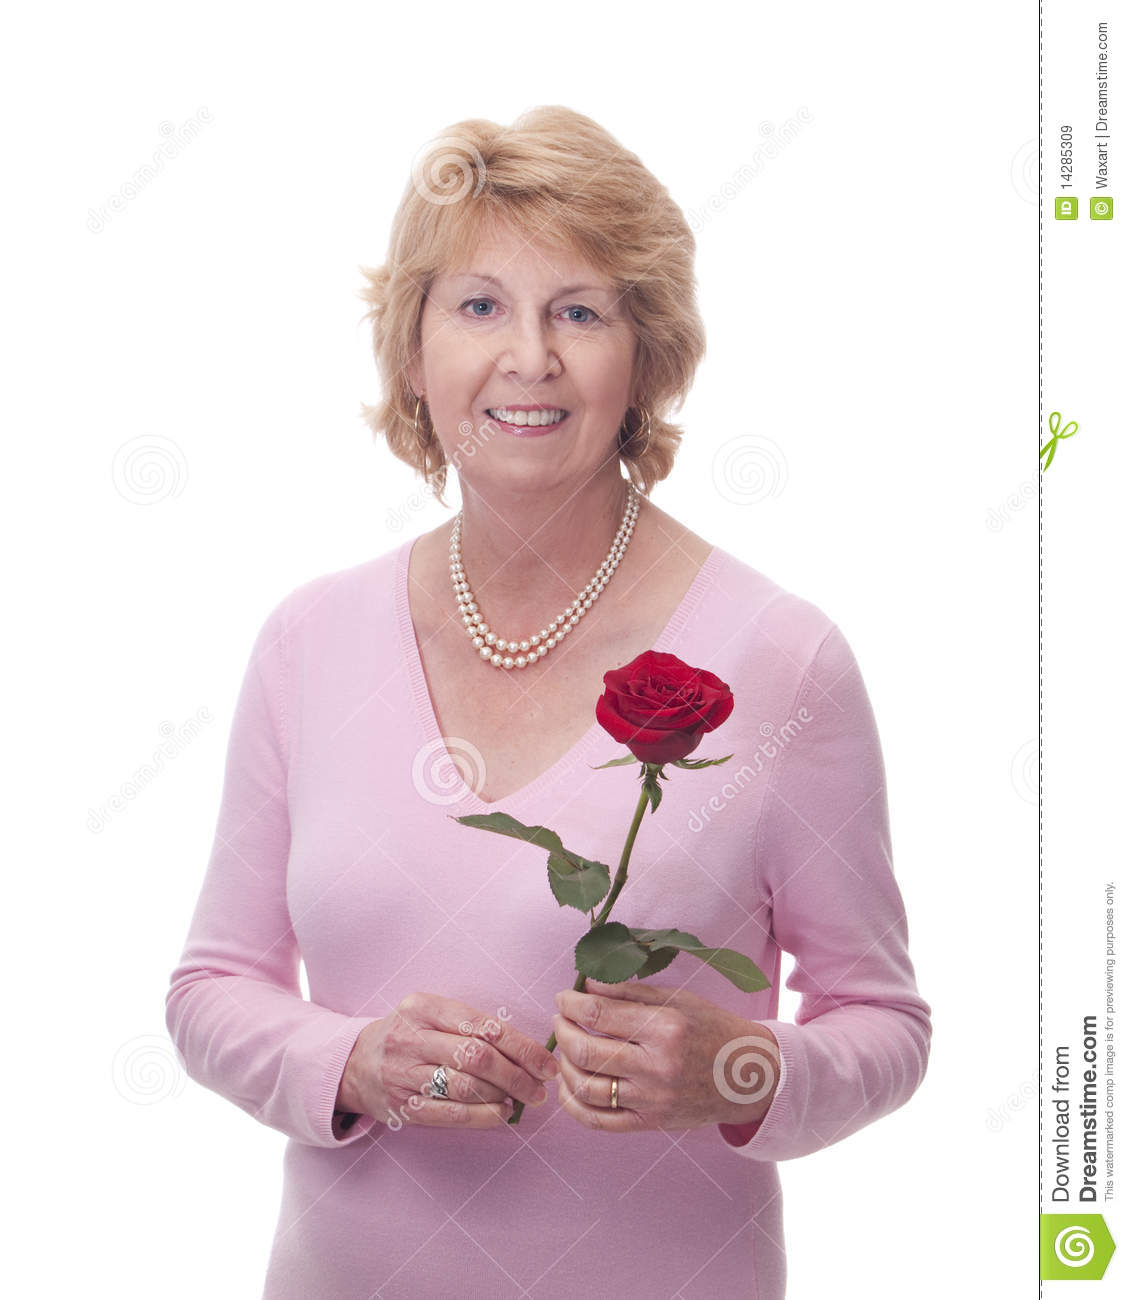 dewy rose senior personals Compare the top memory care facilities in dewy rose ga view facility pictures, services, licensing, city info tour online save time.